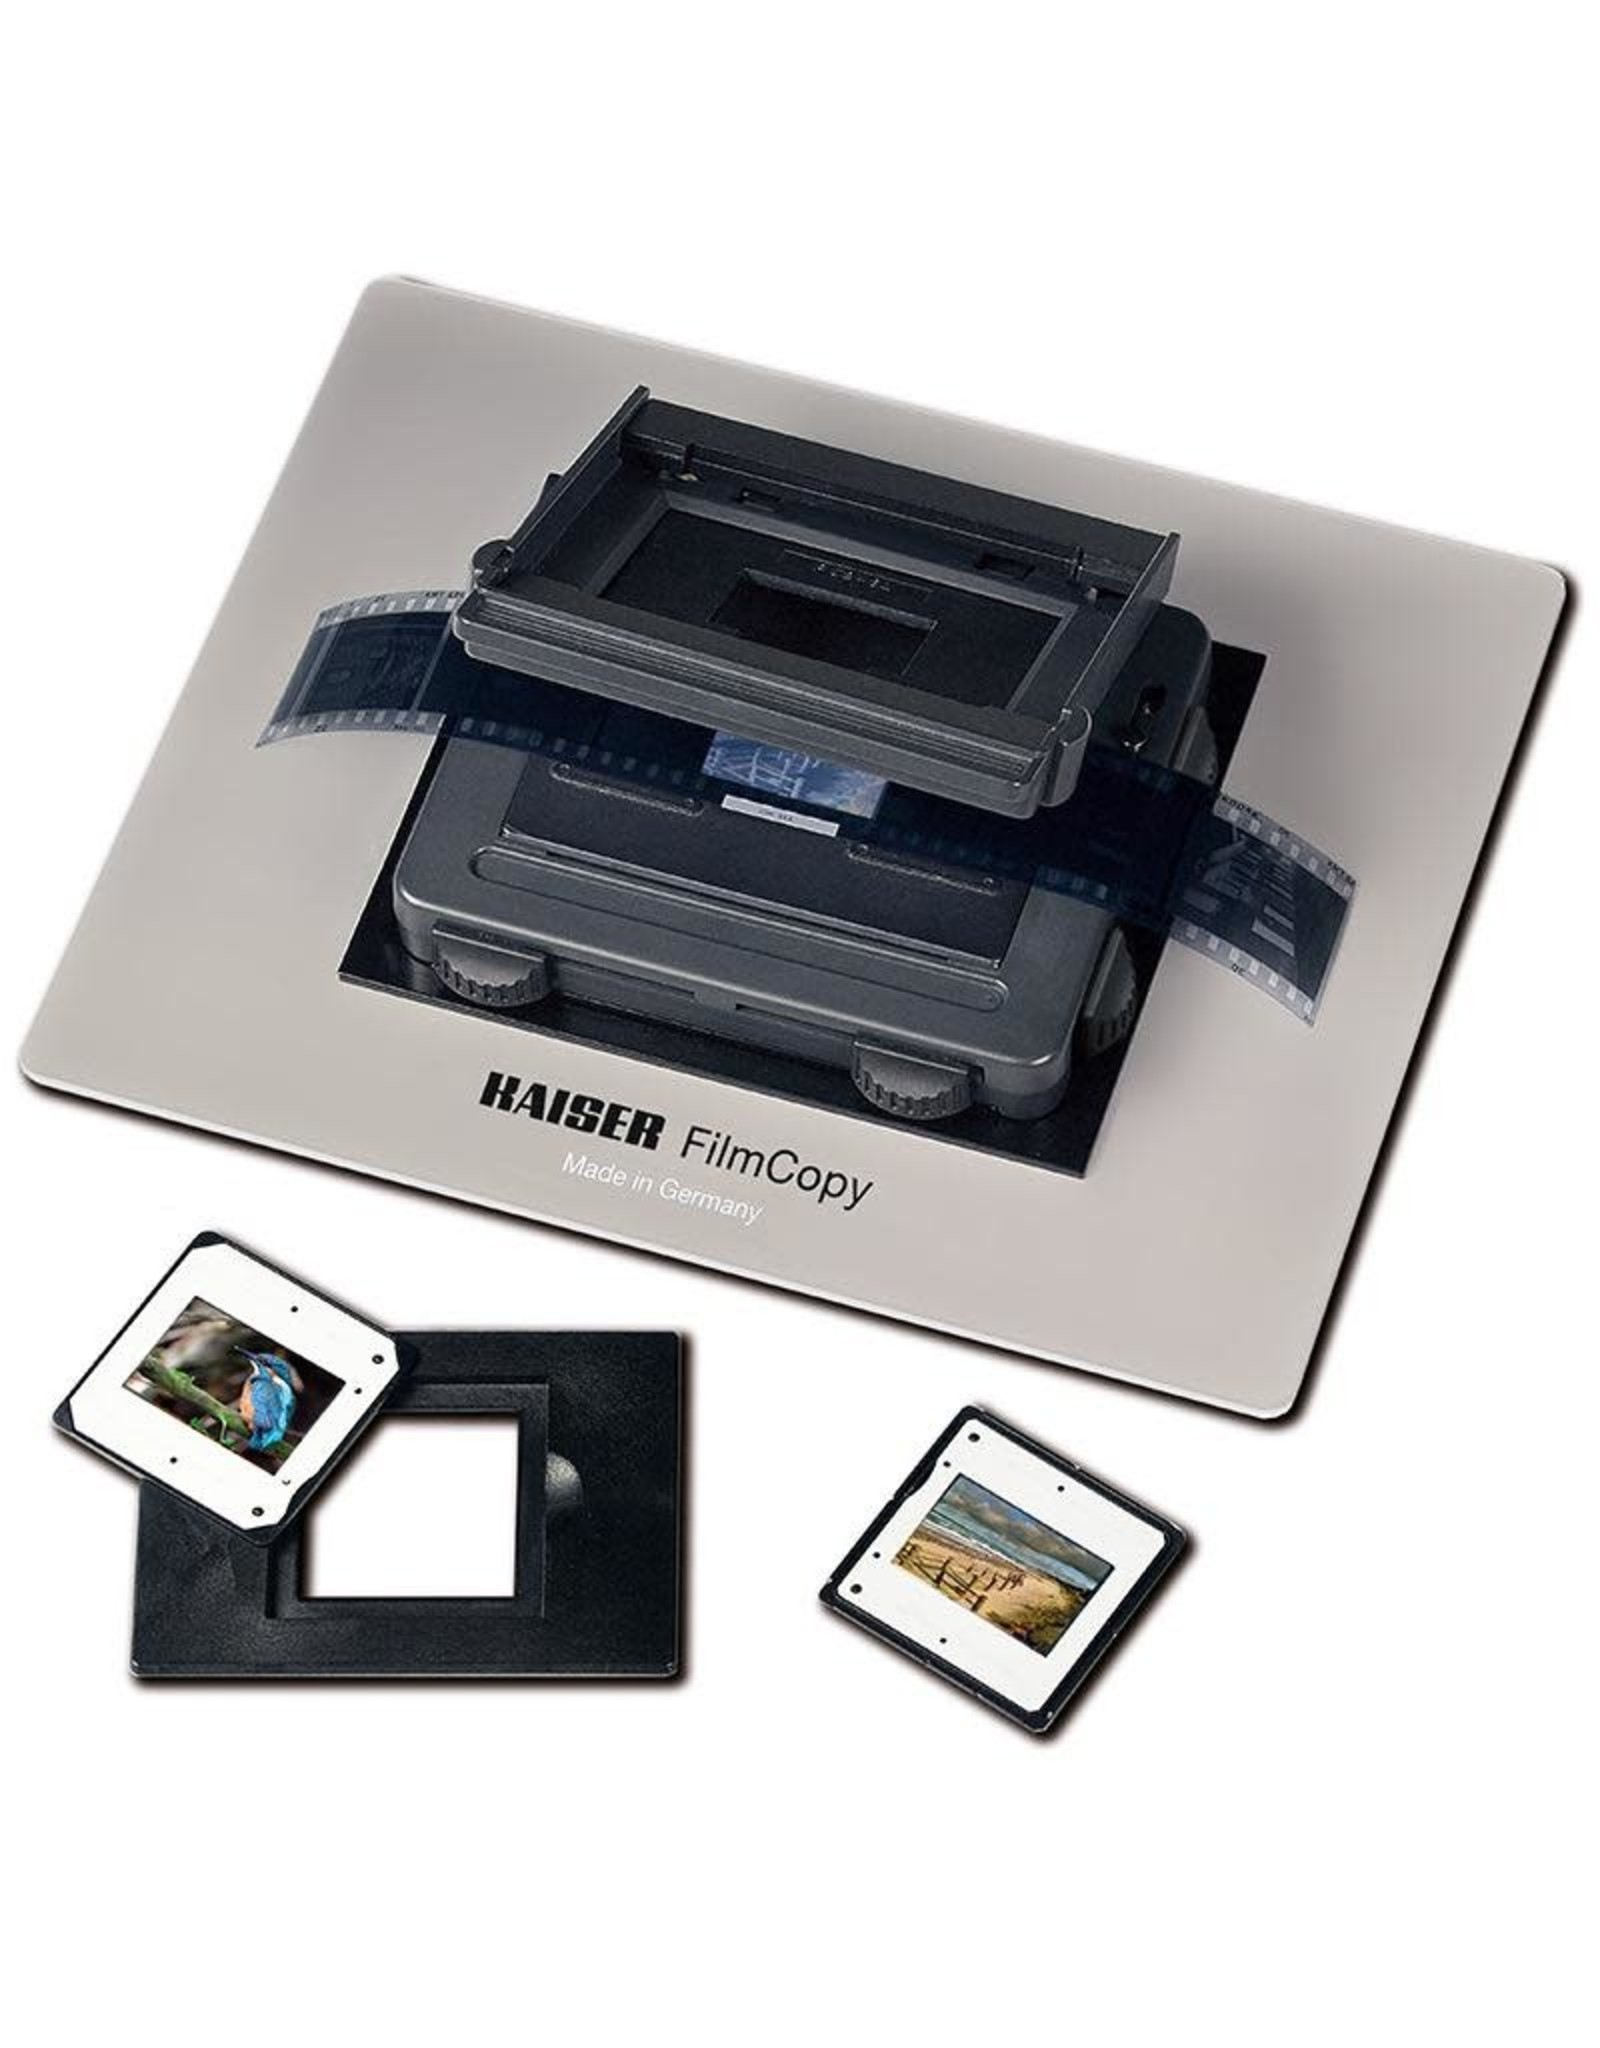 Kaiser Kaiser FilmCopy Vario. holding device for use on light boxes for digital capture of slides and negatives of various formats.